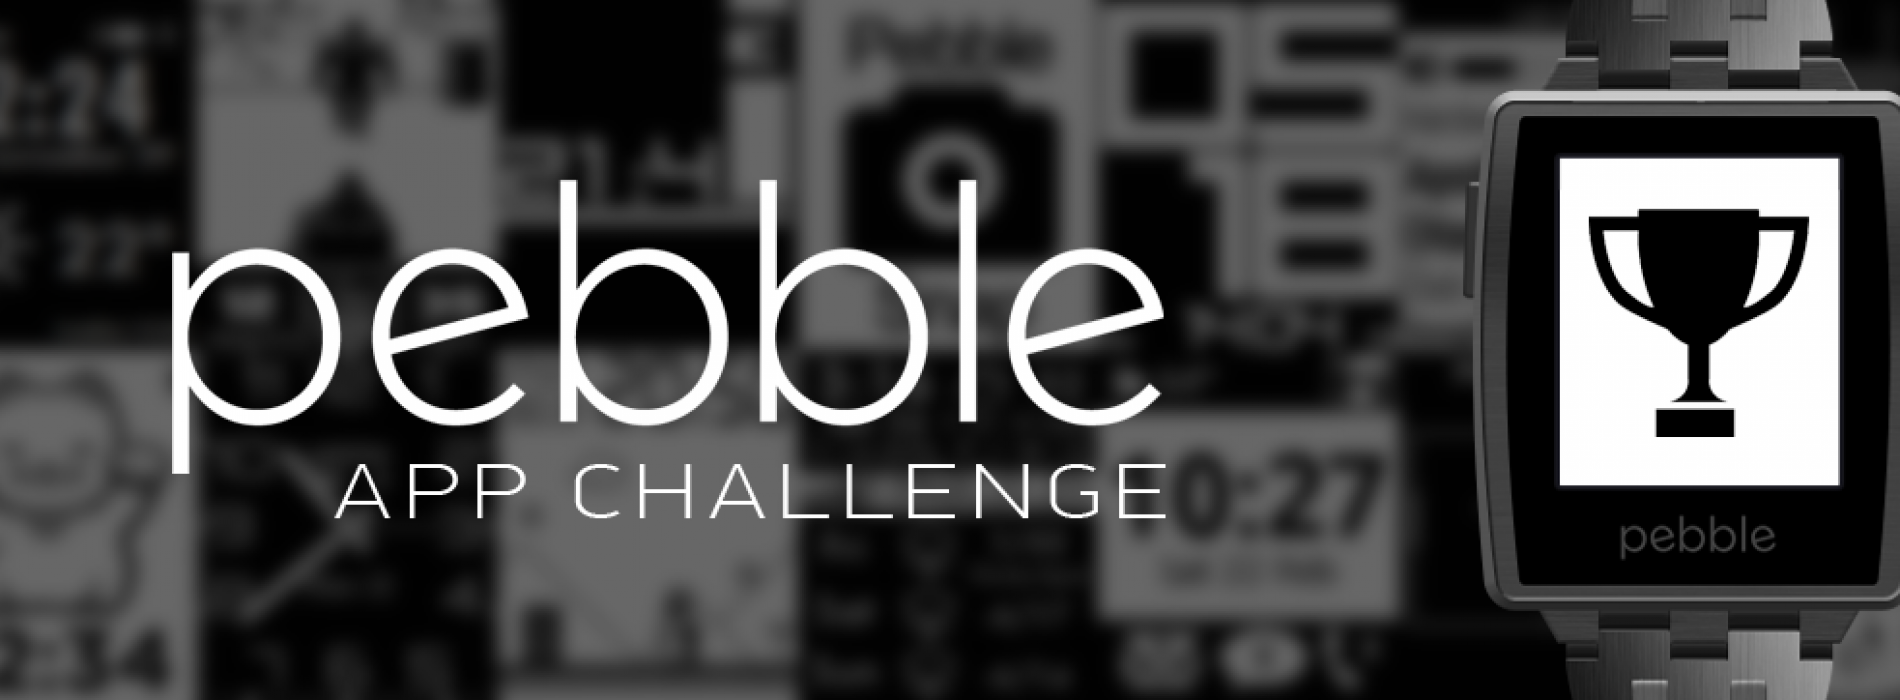 The Pebble App Challenge will reward developers with Pebble Steels and a cash prize